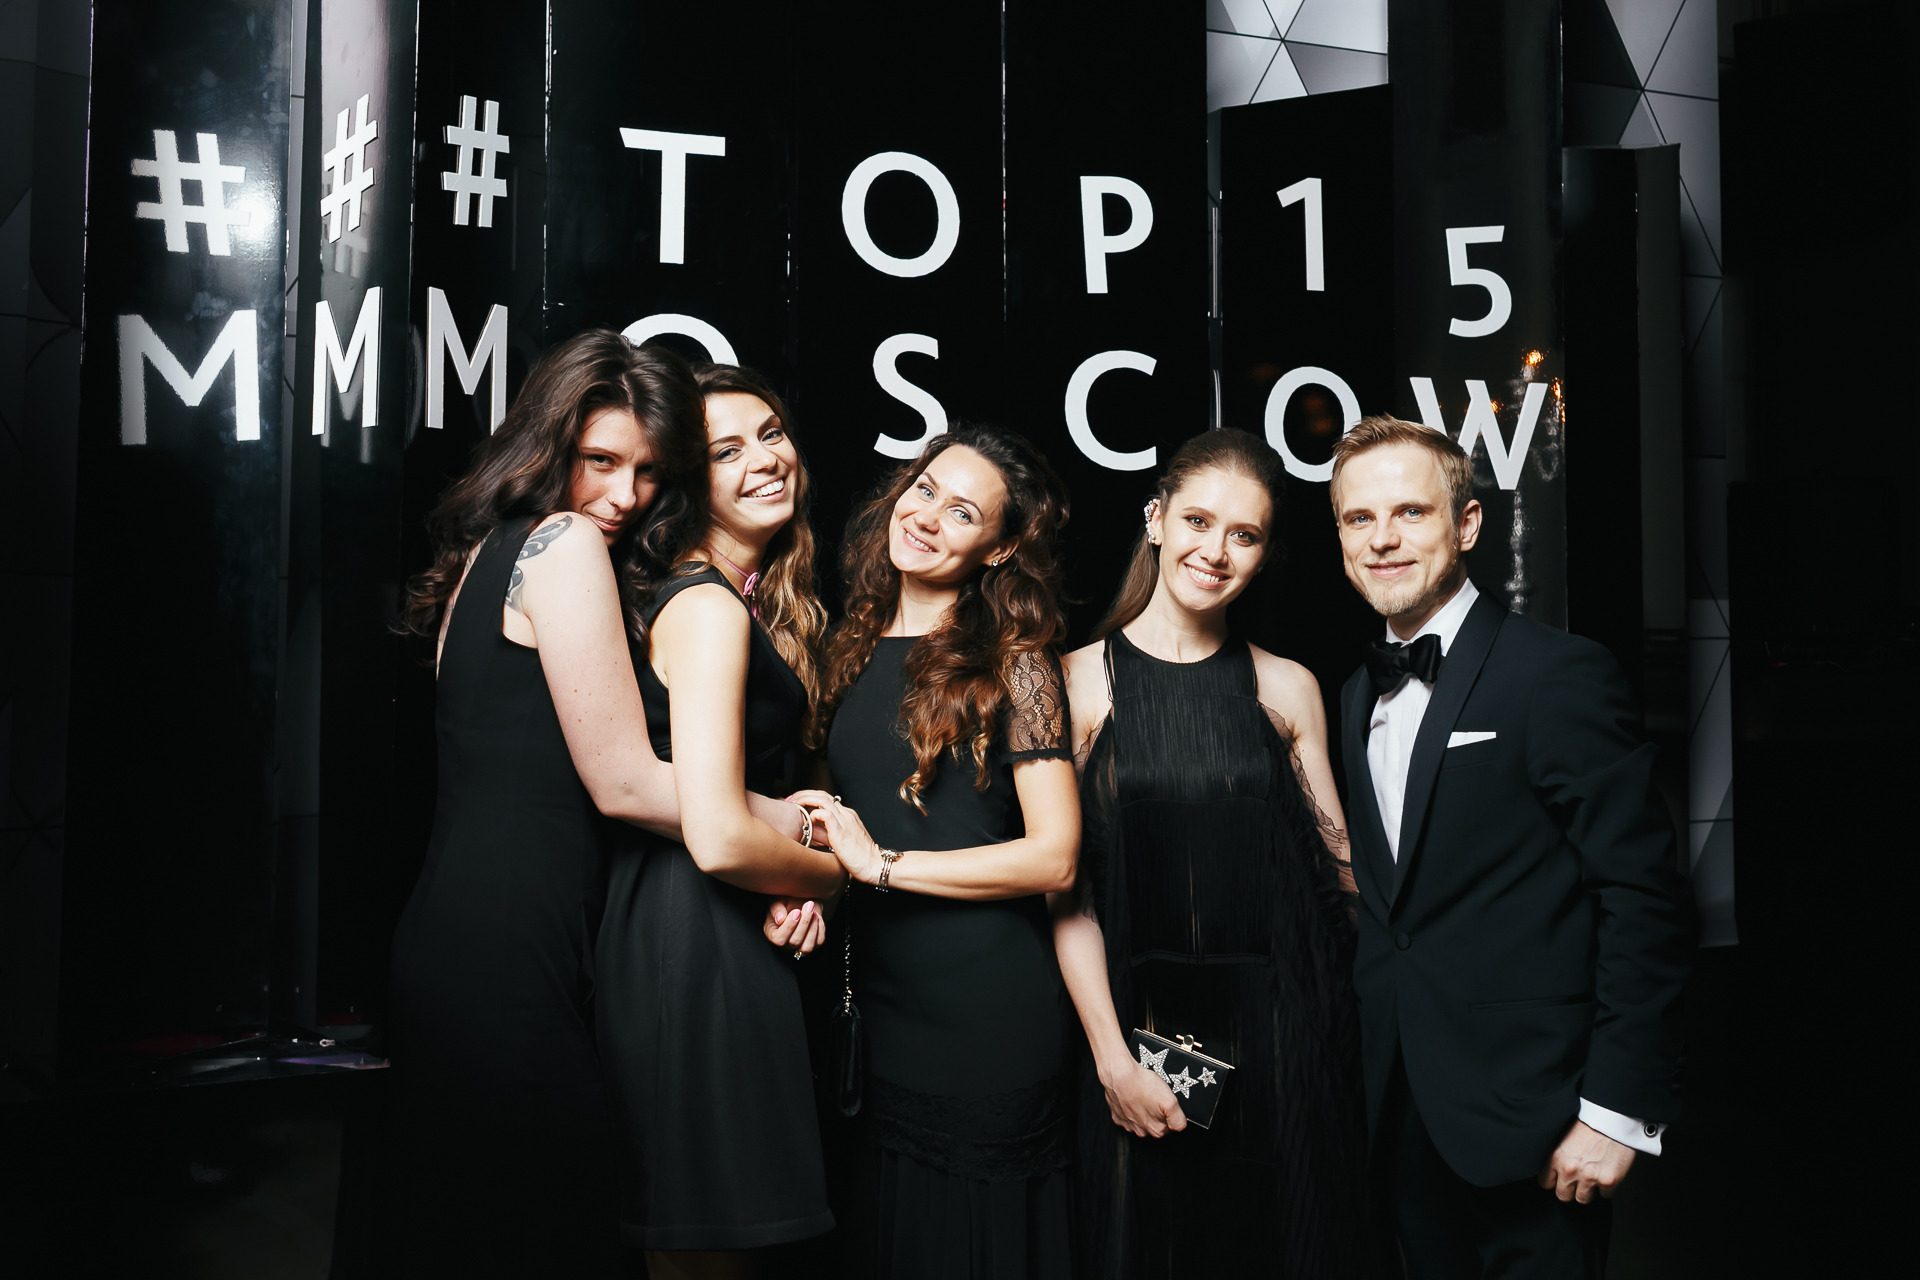 top15moscow, special day